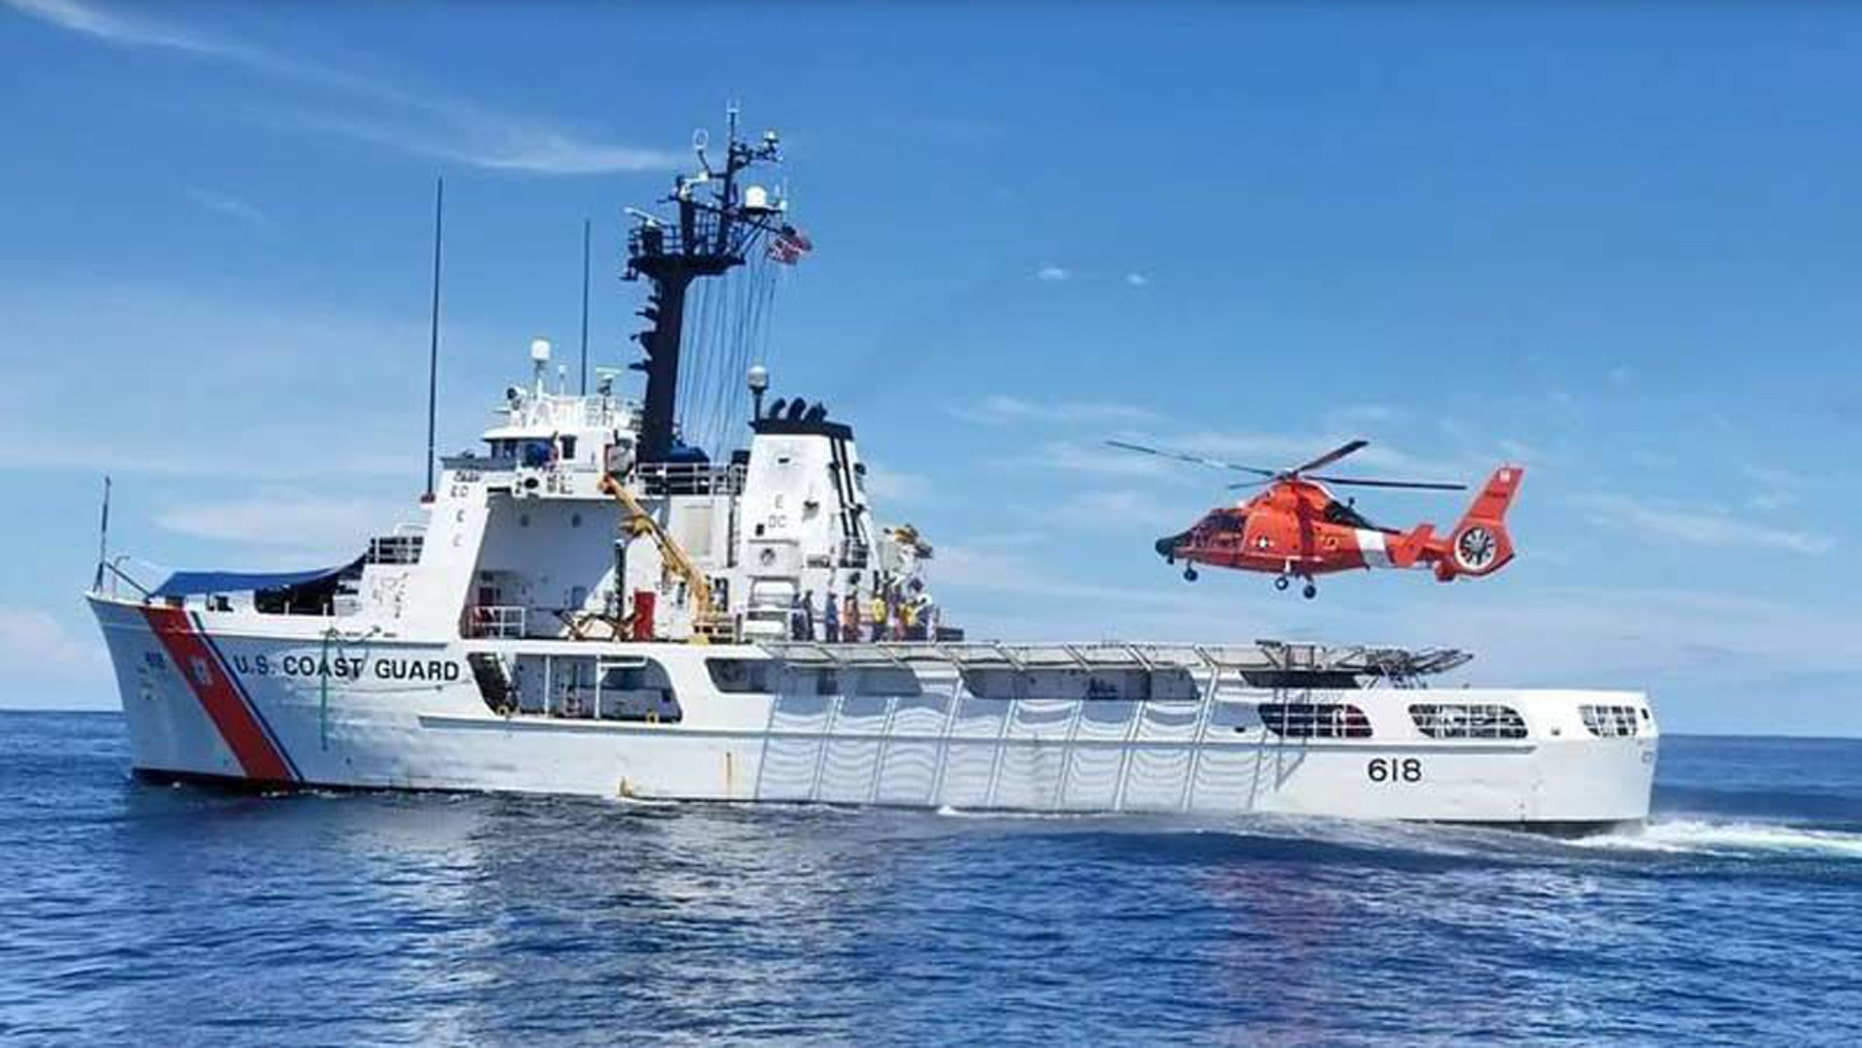 A crew from the U.S. Coast Guard seized $87 million worth of cocaine and returned to Washington state on Friday, reports said.